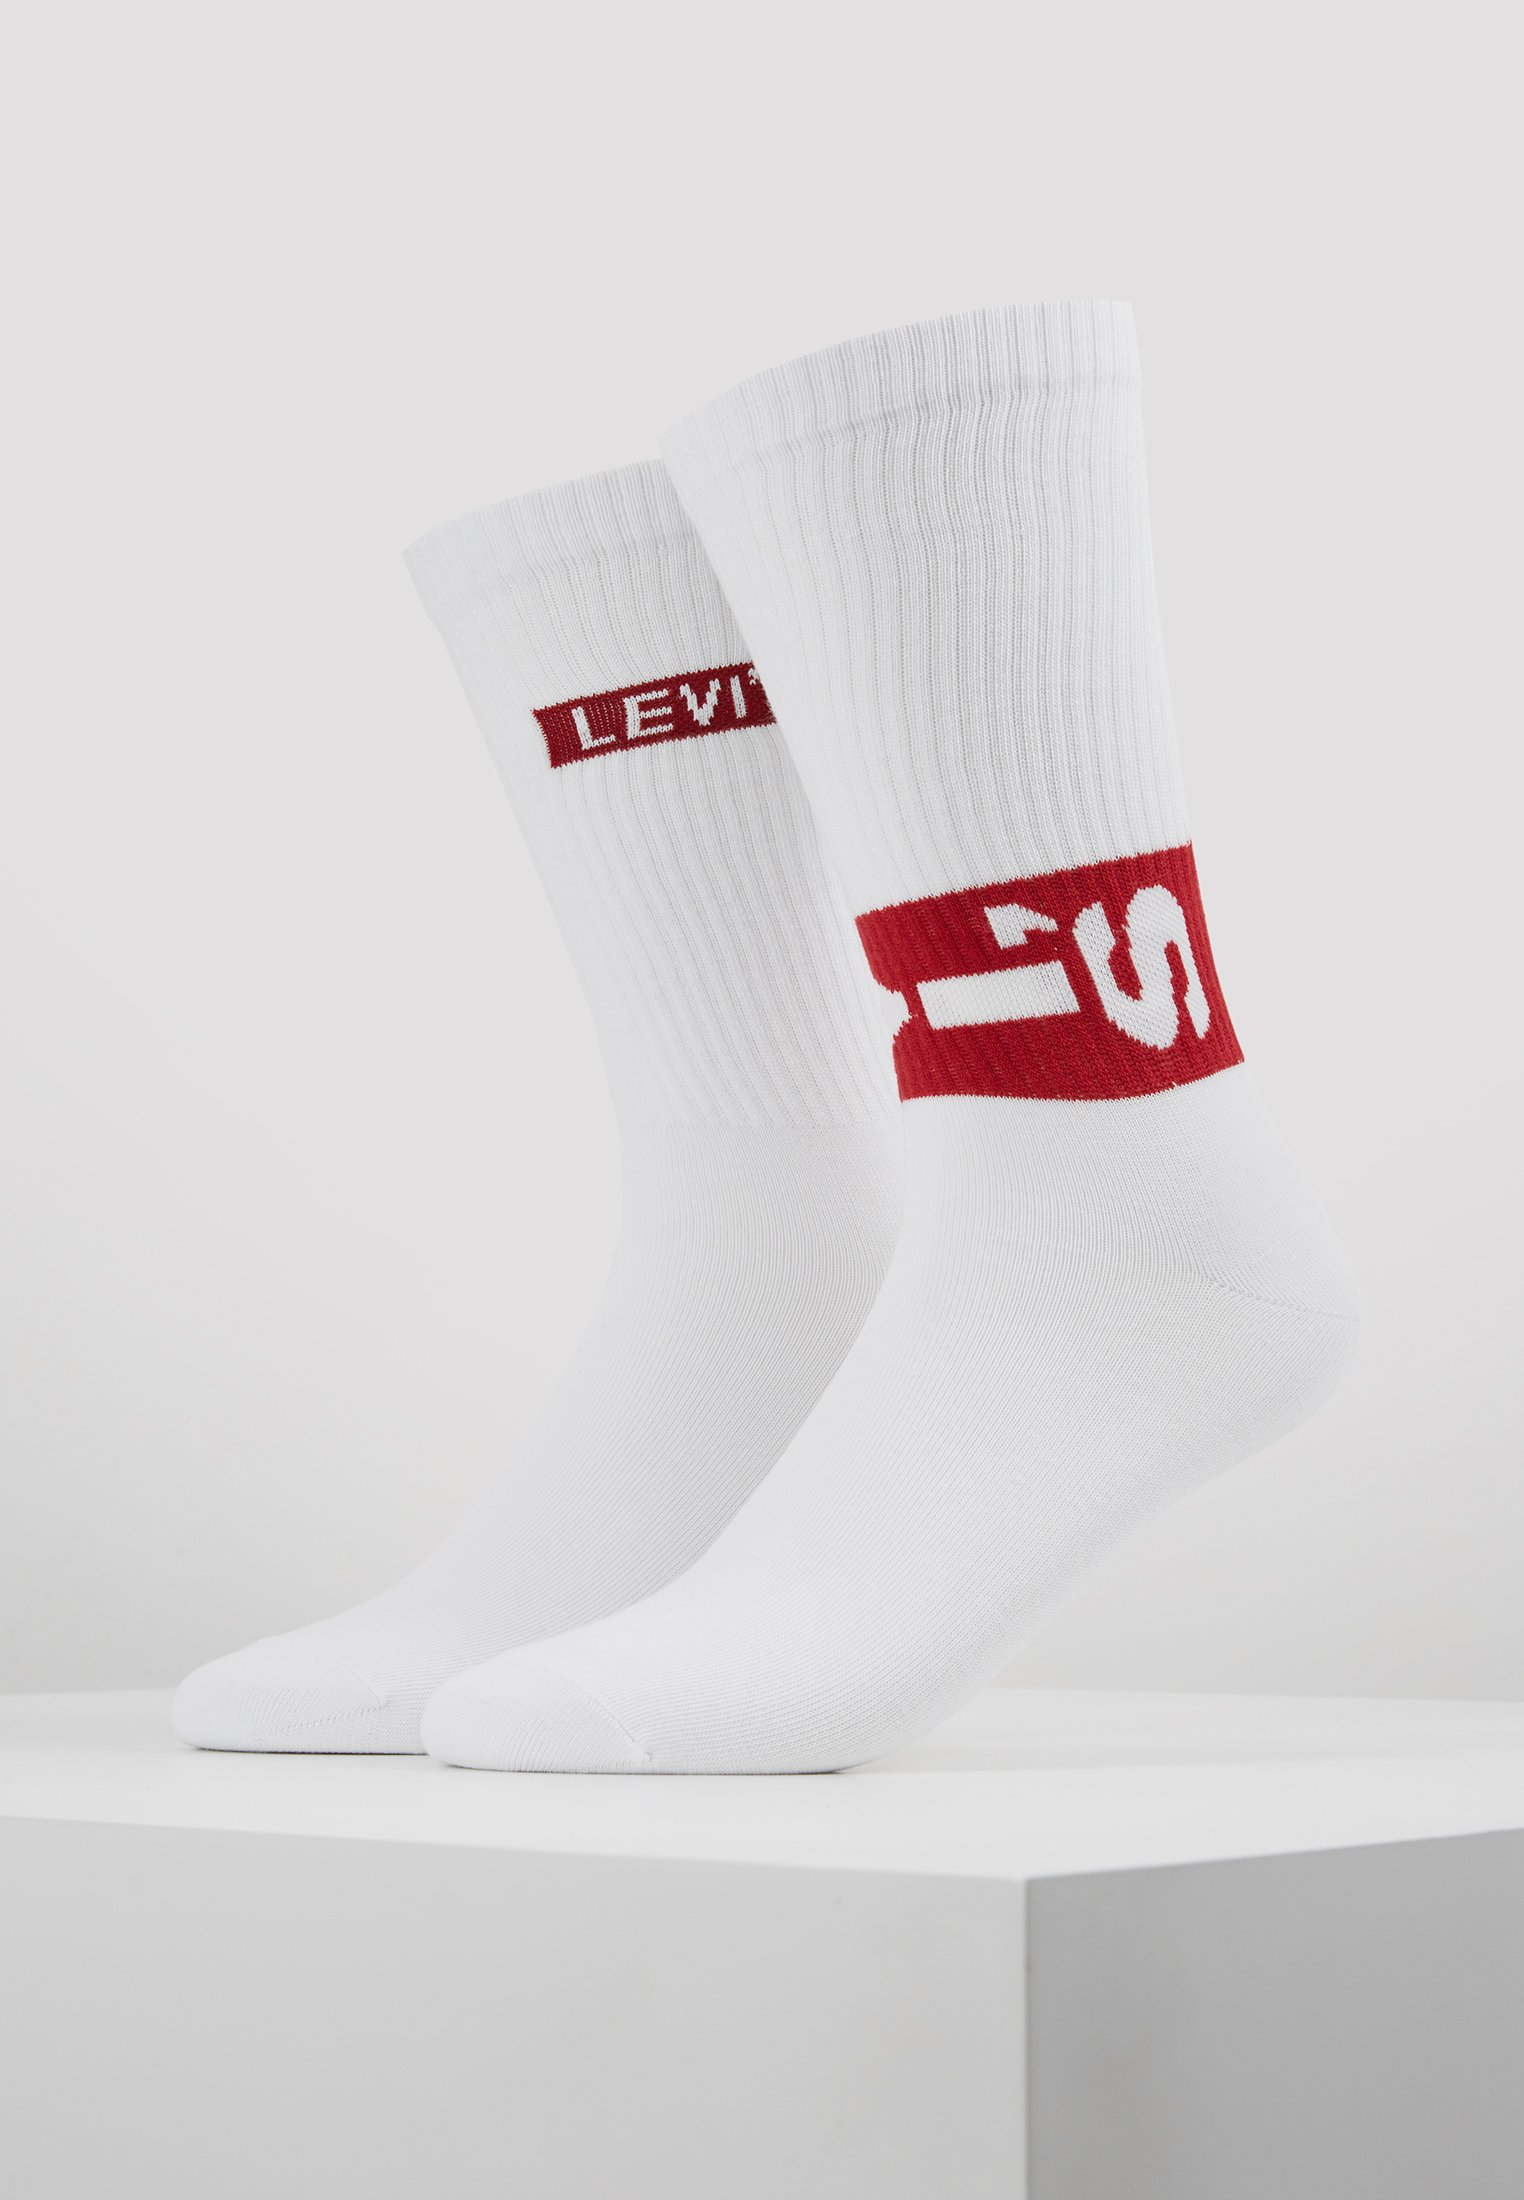 Regular White Tab PackChaussettes Cut Lazy 2 Levi's® OZiPkuX